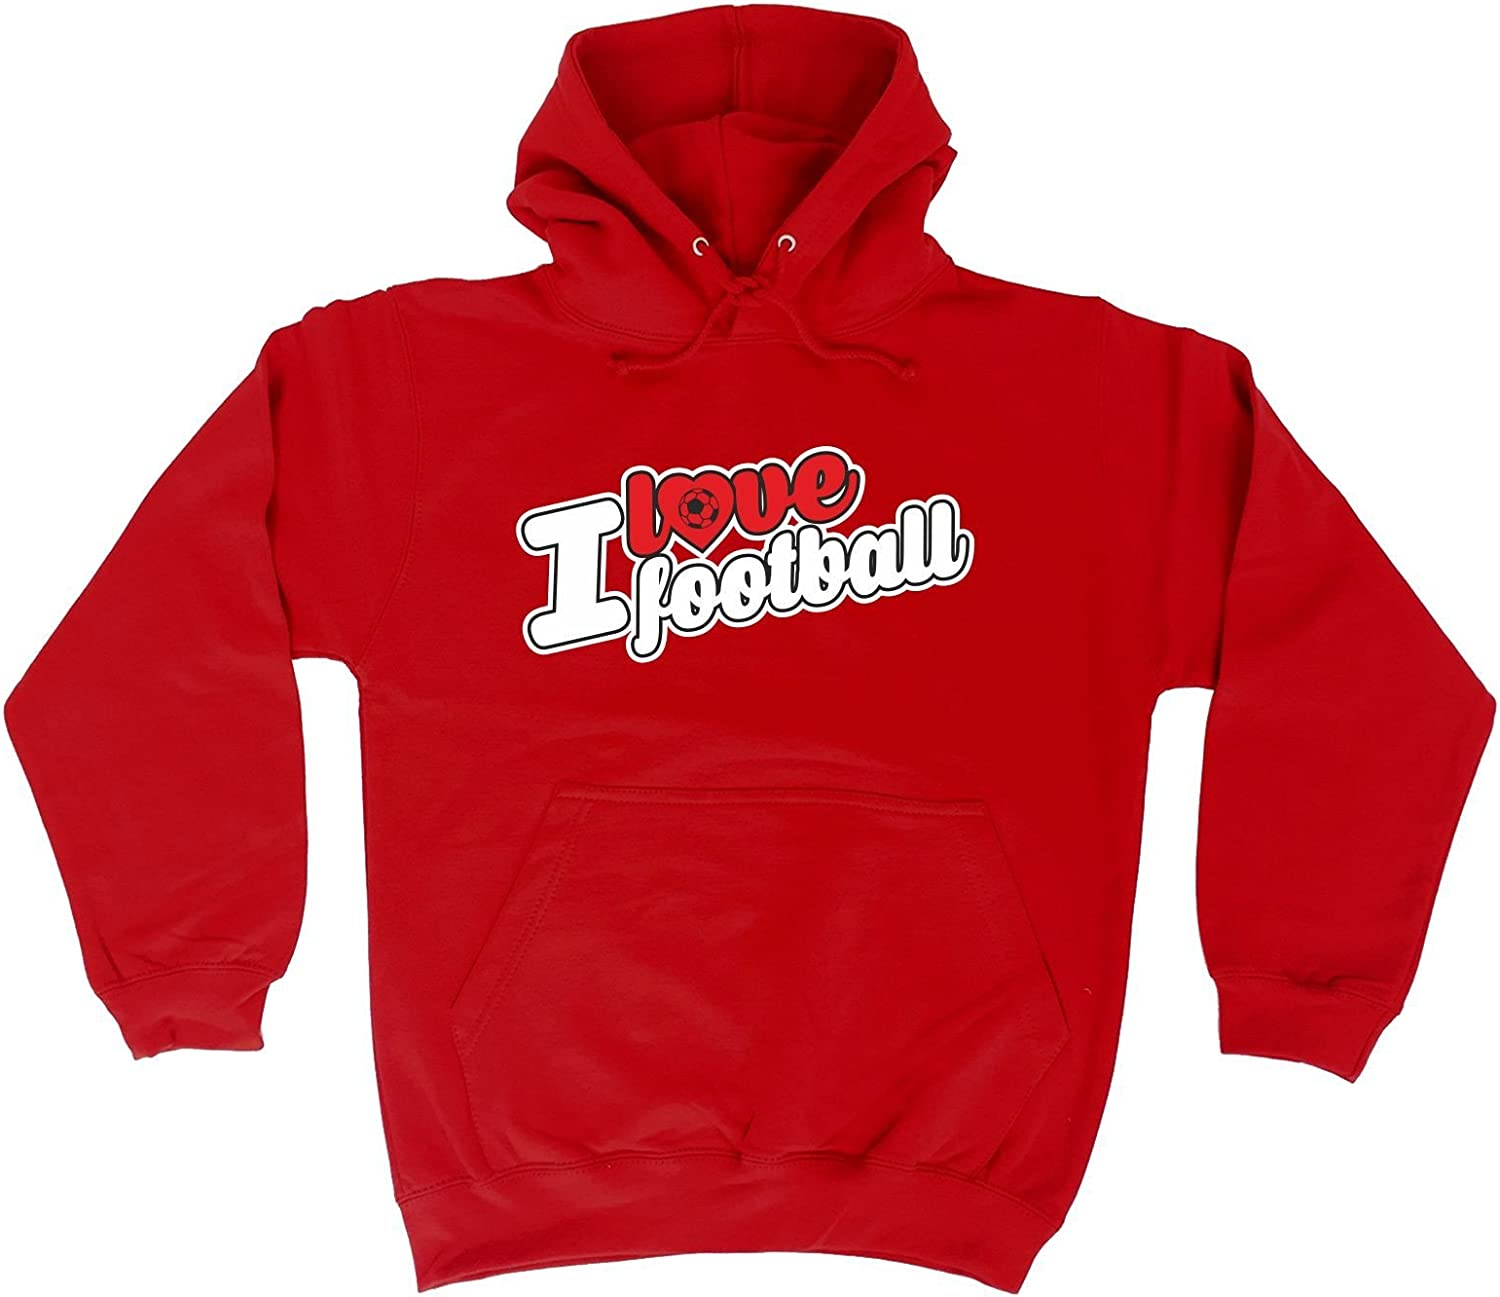 The Evolution Of Football Footy hoody Sports Funny HOODIE Birthday for him her